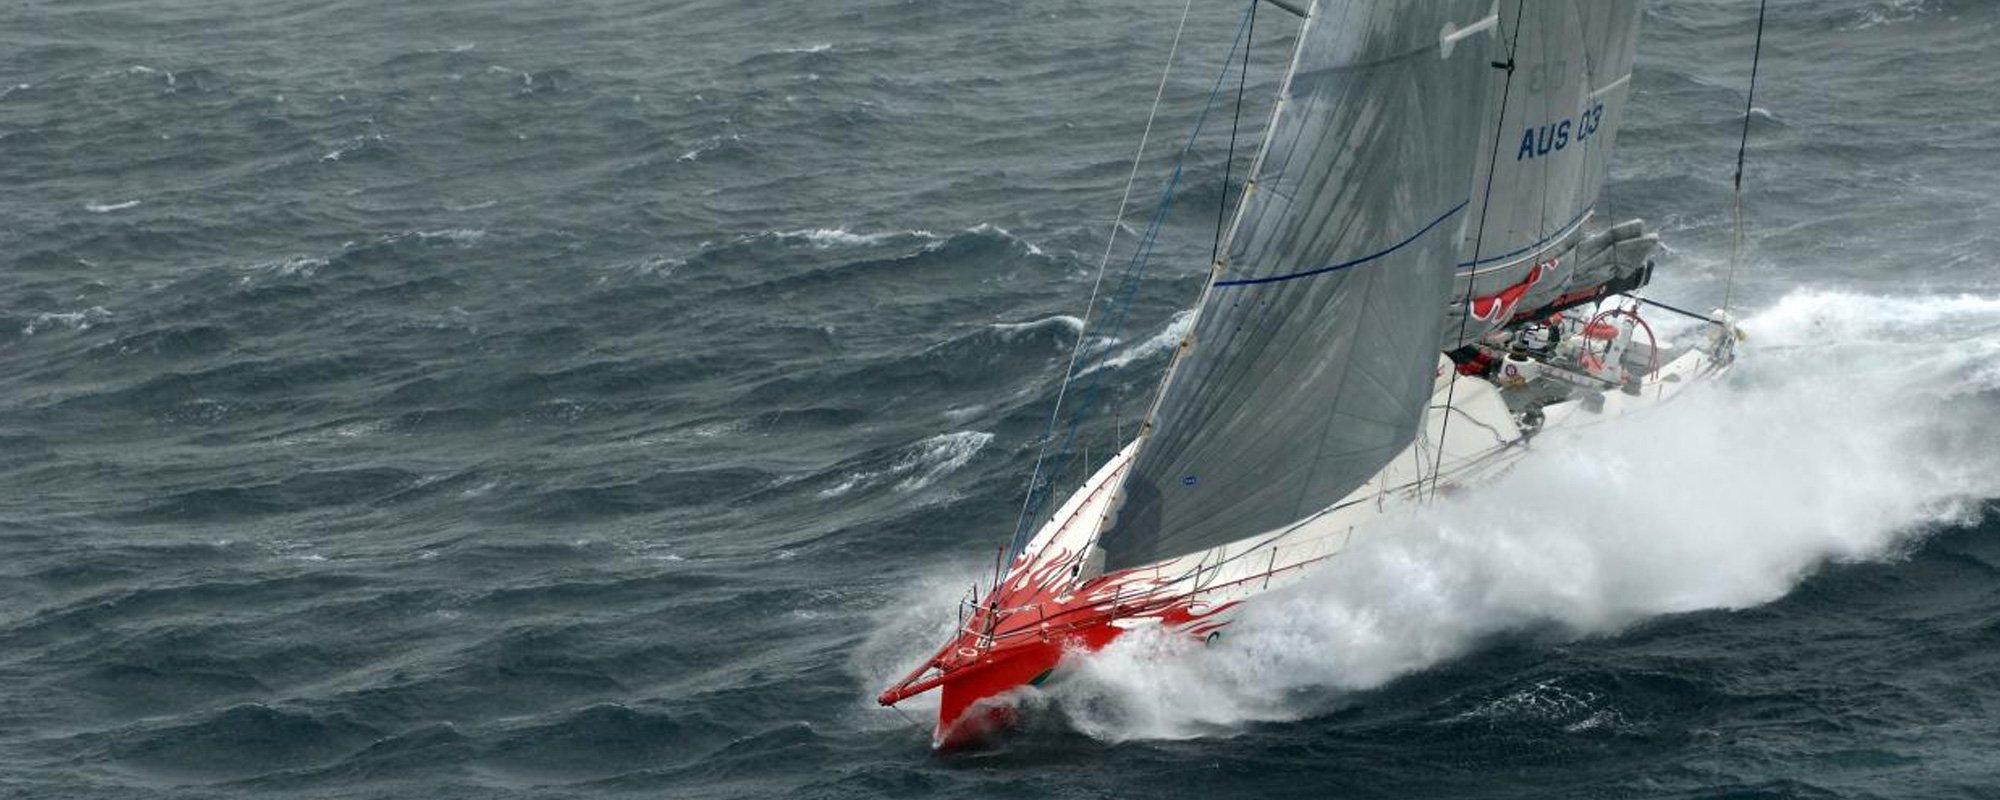 View of a sailing boat in deep waters